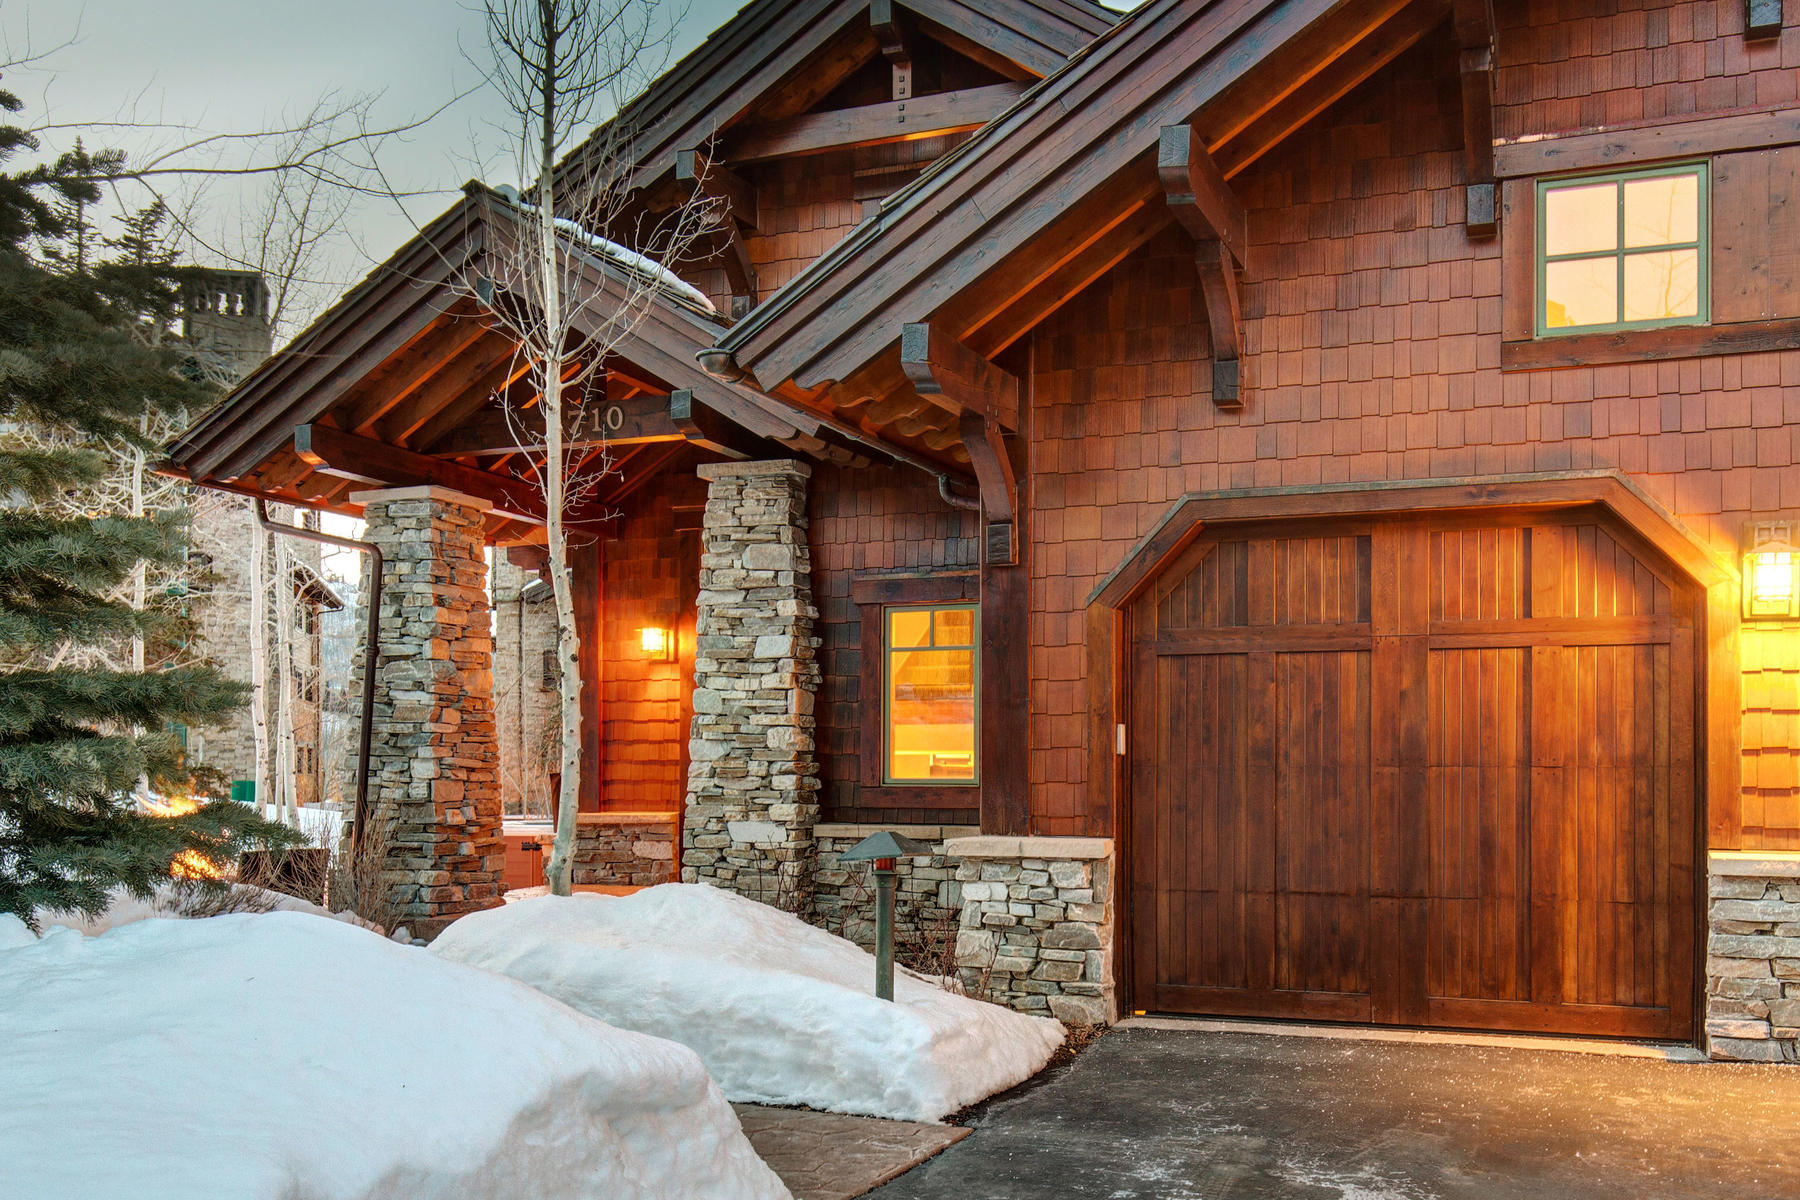 Additional photo for property listing at Sophisticated Townhome On Silver Buck Ski Trail 8710 Empire Club Dr #1 Park City, Utah 84060 United States